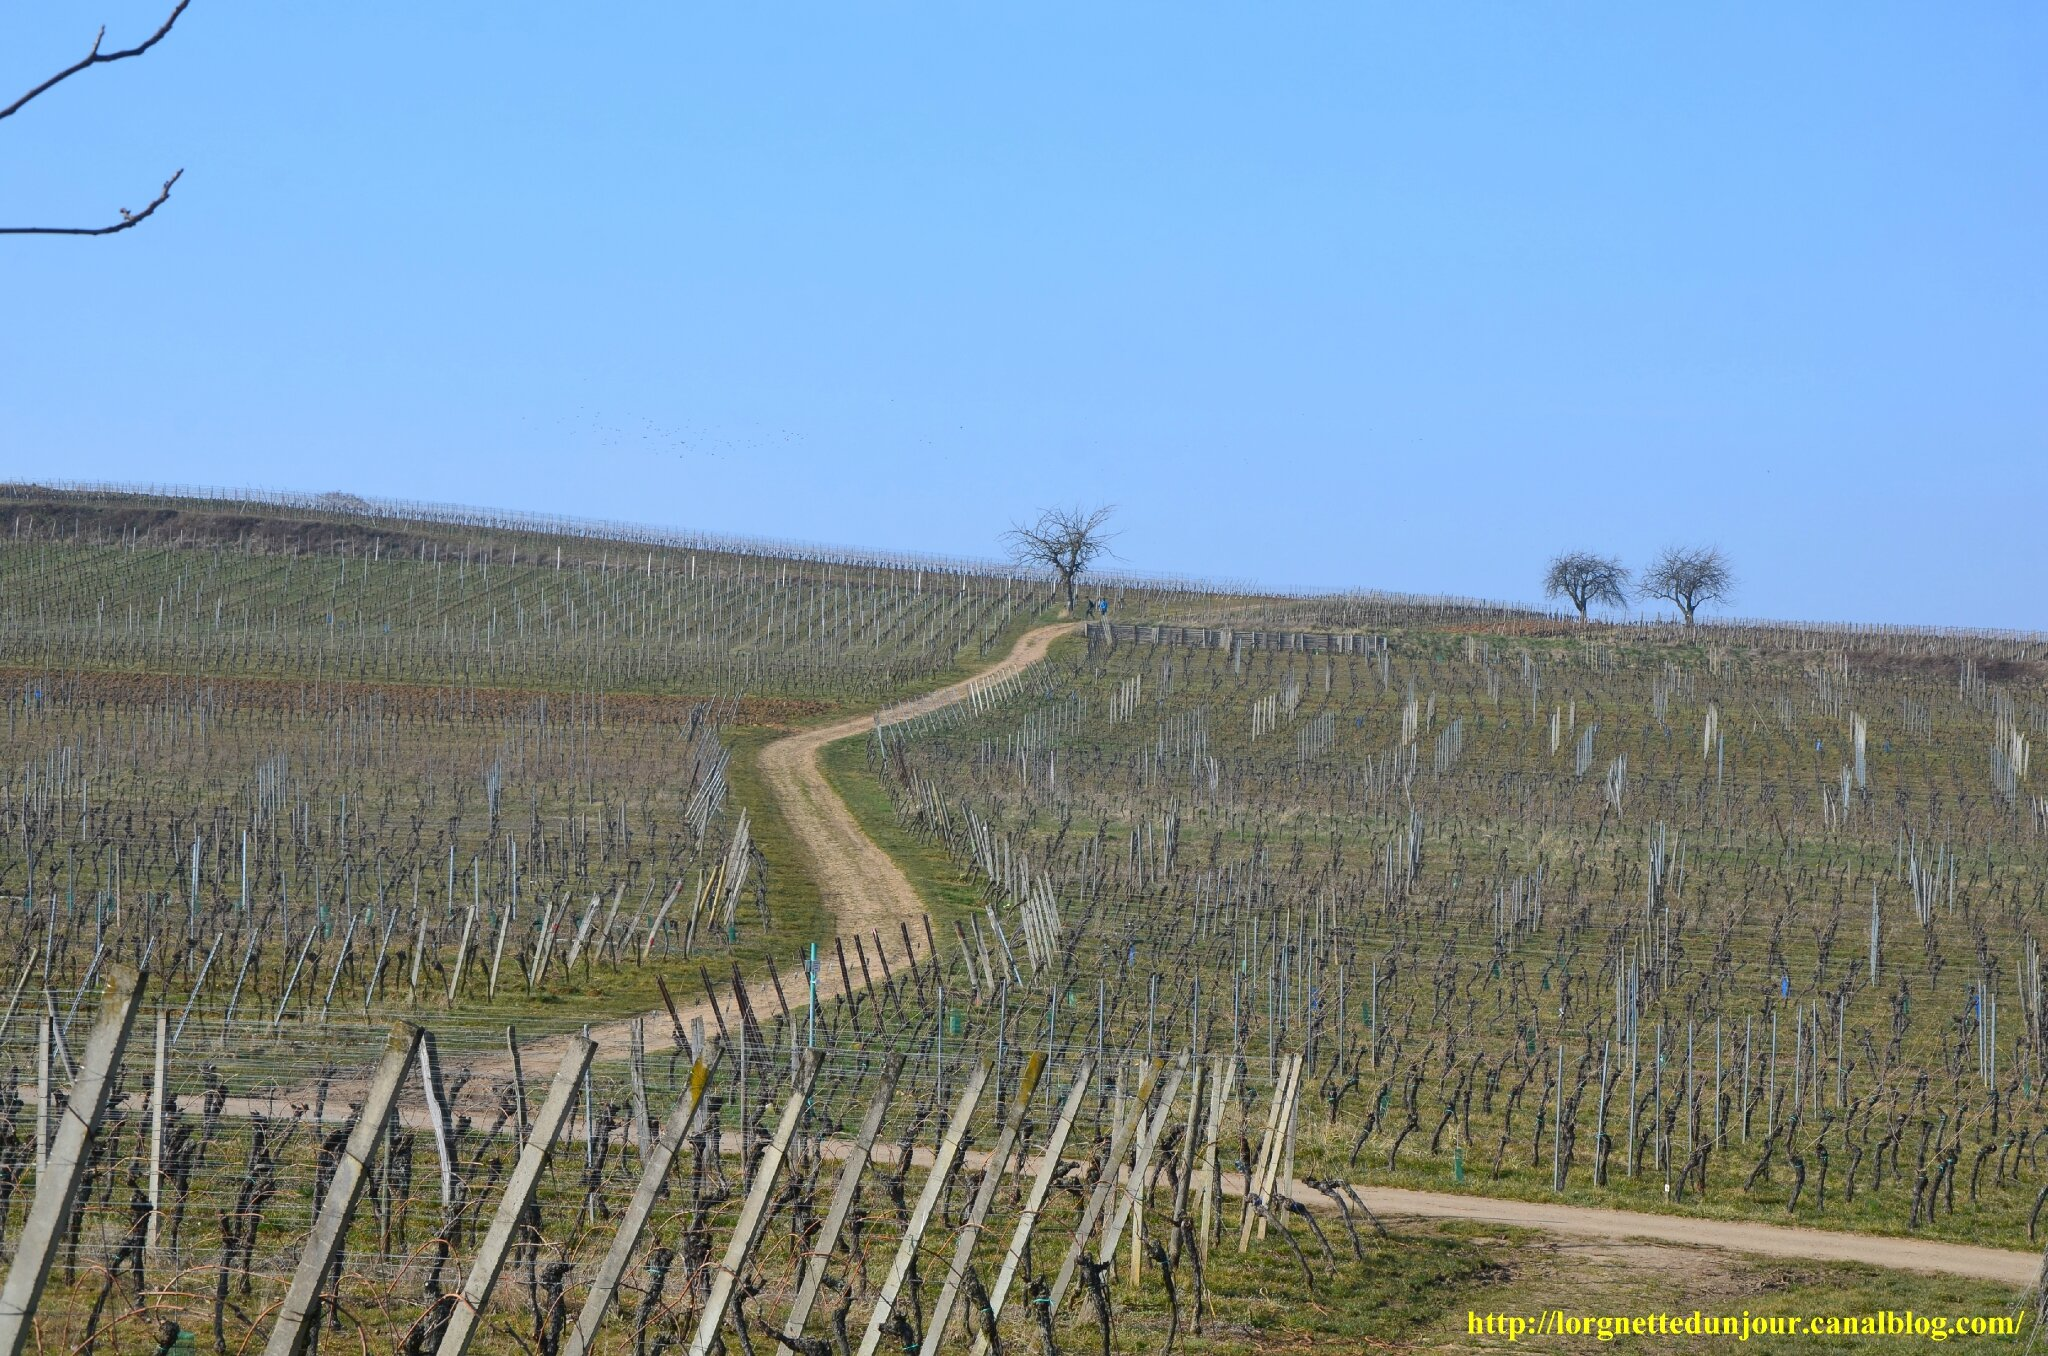 25/03/14 : Le vignoble de la Couronne d'or